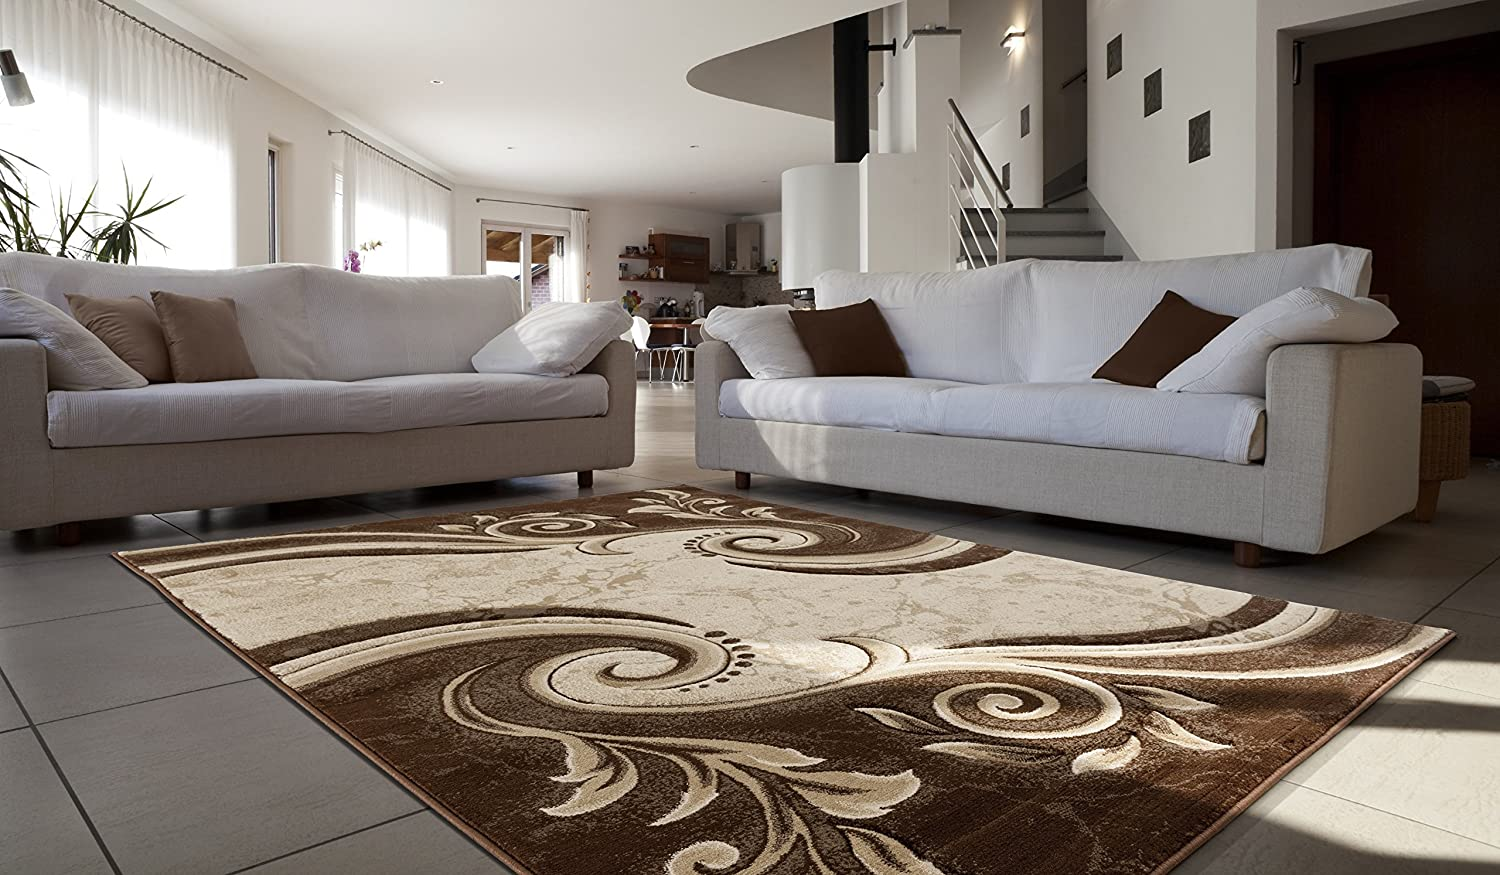 Contemporary Carved Modern Swirl with Floral Design Area Rug Legacy Collection (5' x 7', Brown/Beige) Rug Deal Plus